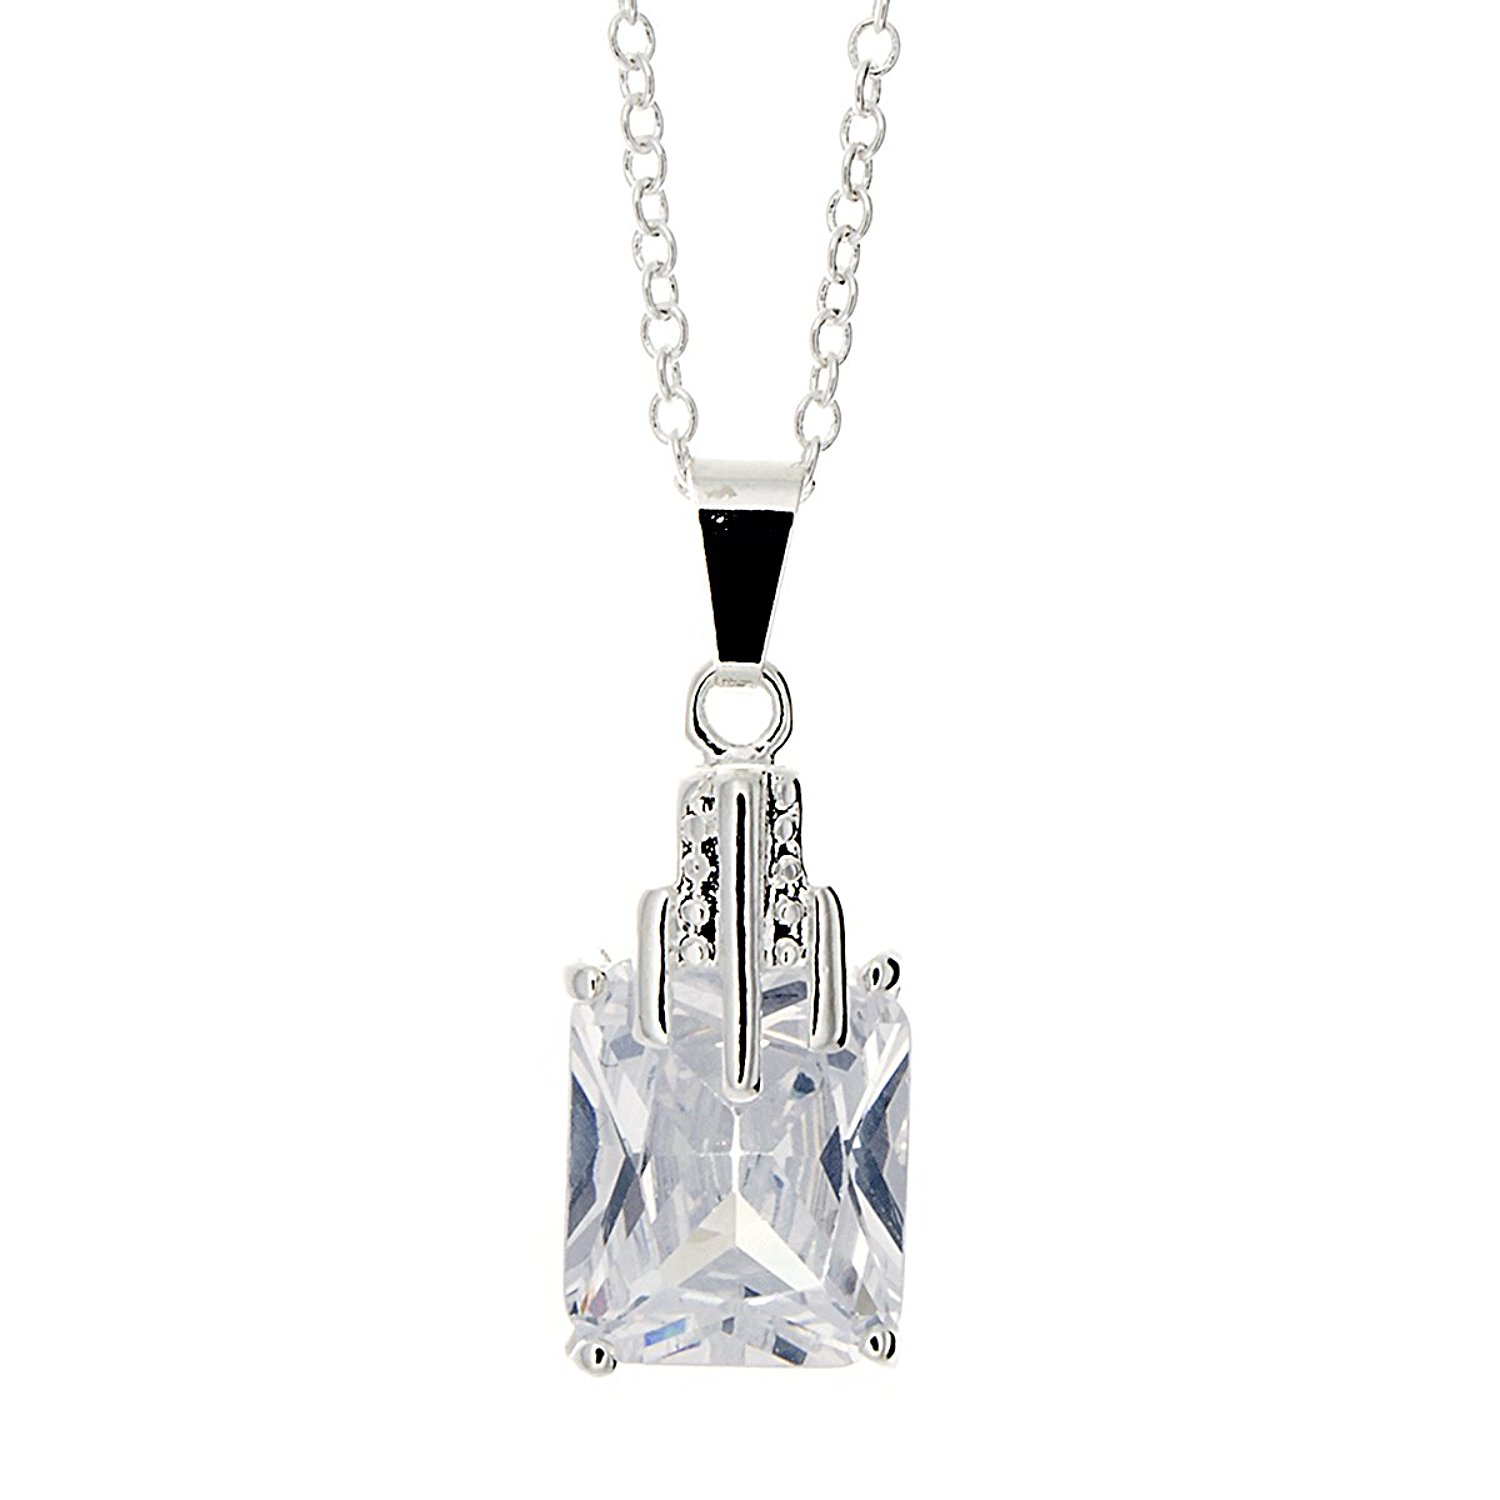 Pop Fashion Silver, Square, Princess Cut, CZ, Stone Necklace, Solitaire, Silver Necklace, Gifts for Women, Teens, Girls